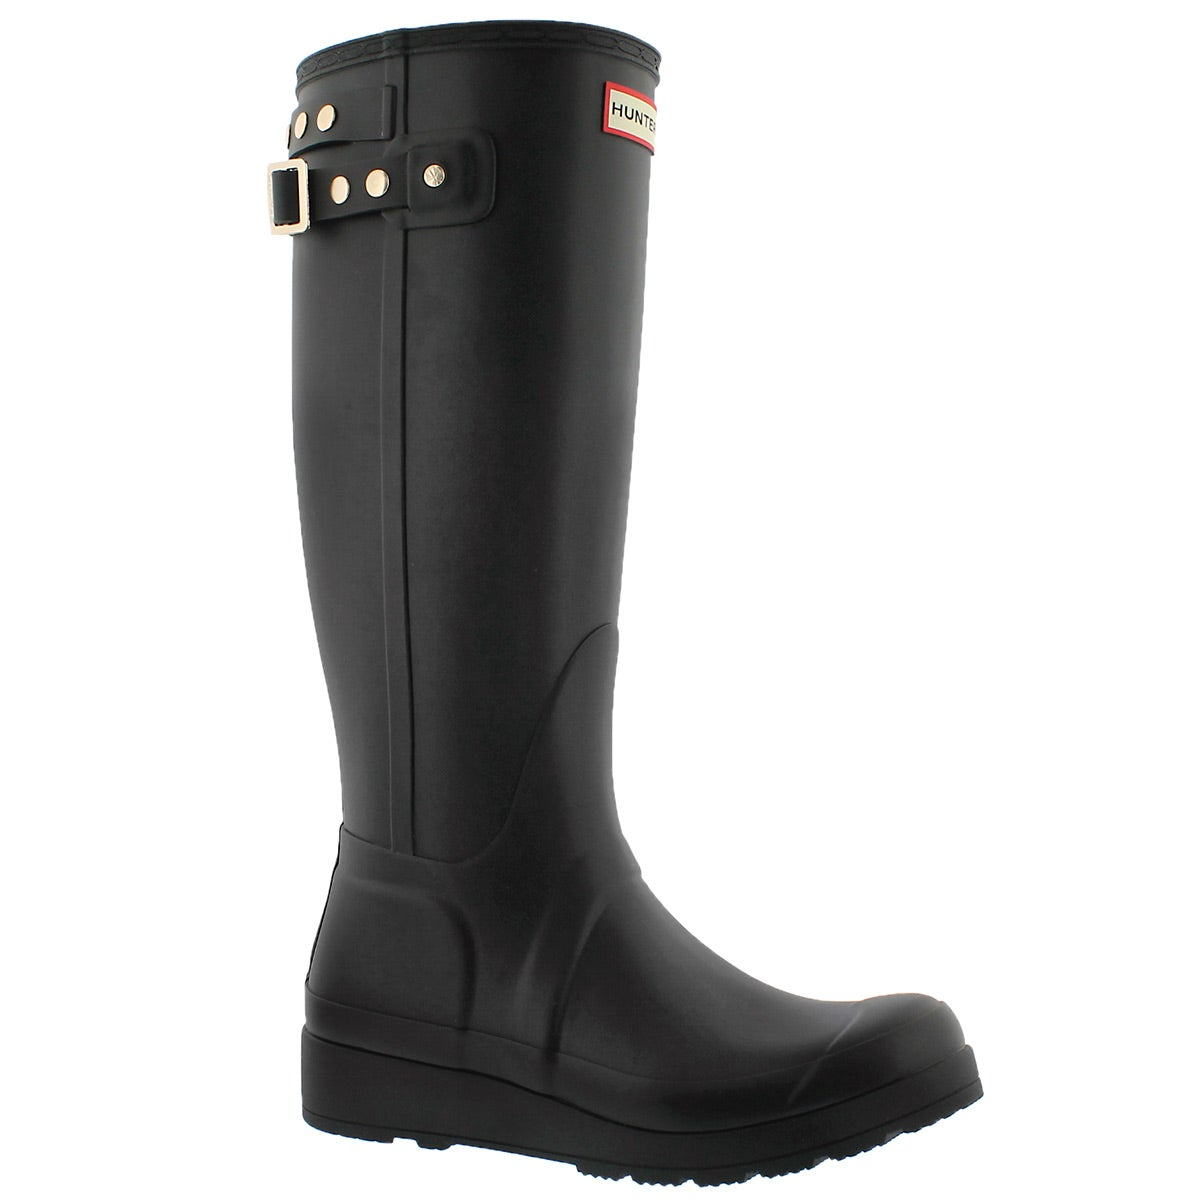 Hunter Boots Women's Original Tall Wedge Back Strapstuds Rain ...